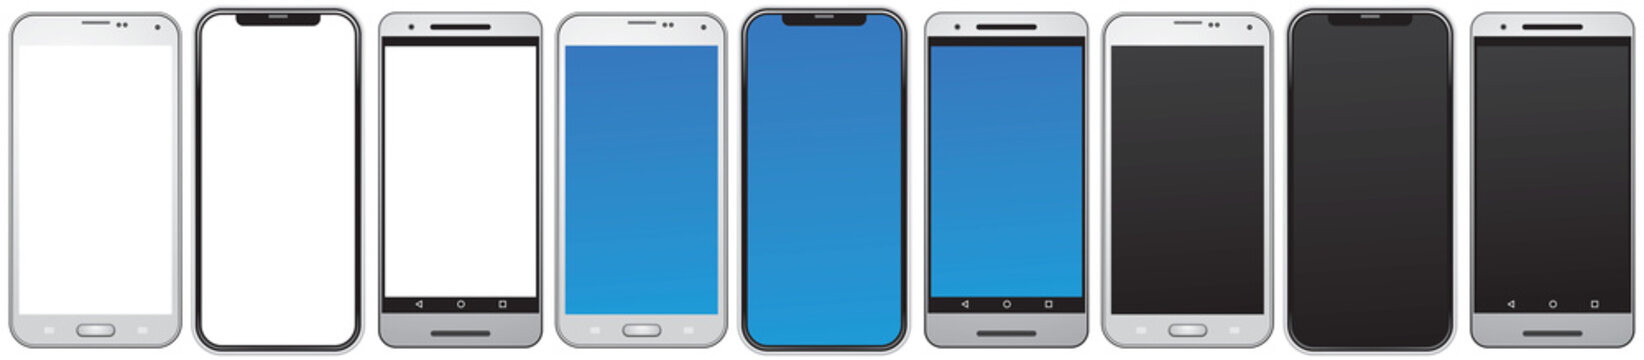 Smart phone, same types of the smartphones, mobile phones isolated with blank, blue and black screens vector illustration for the design or cell phone mockup